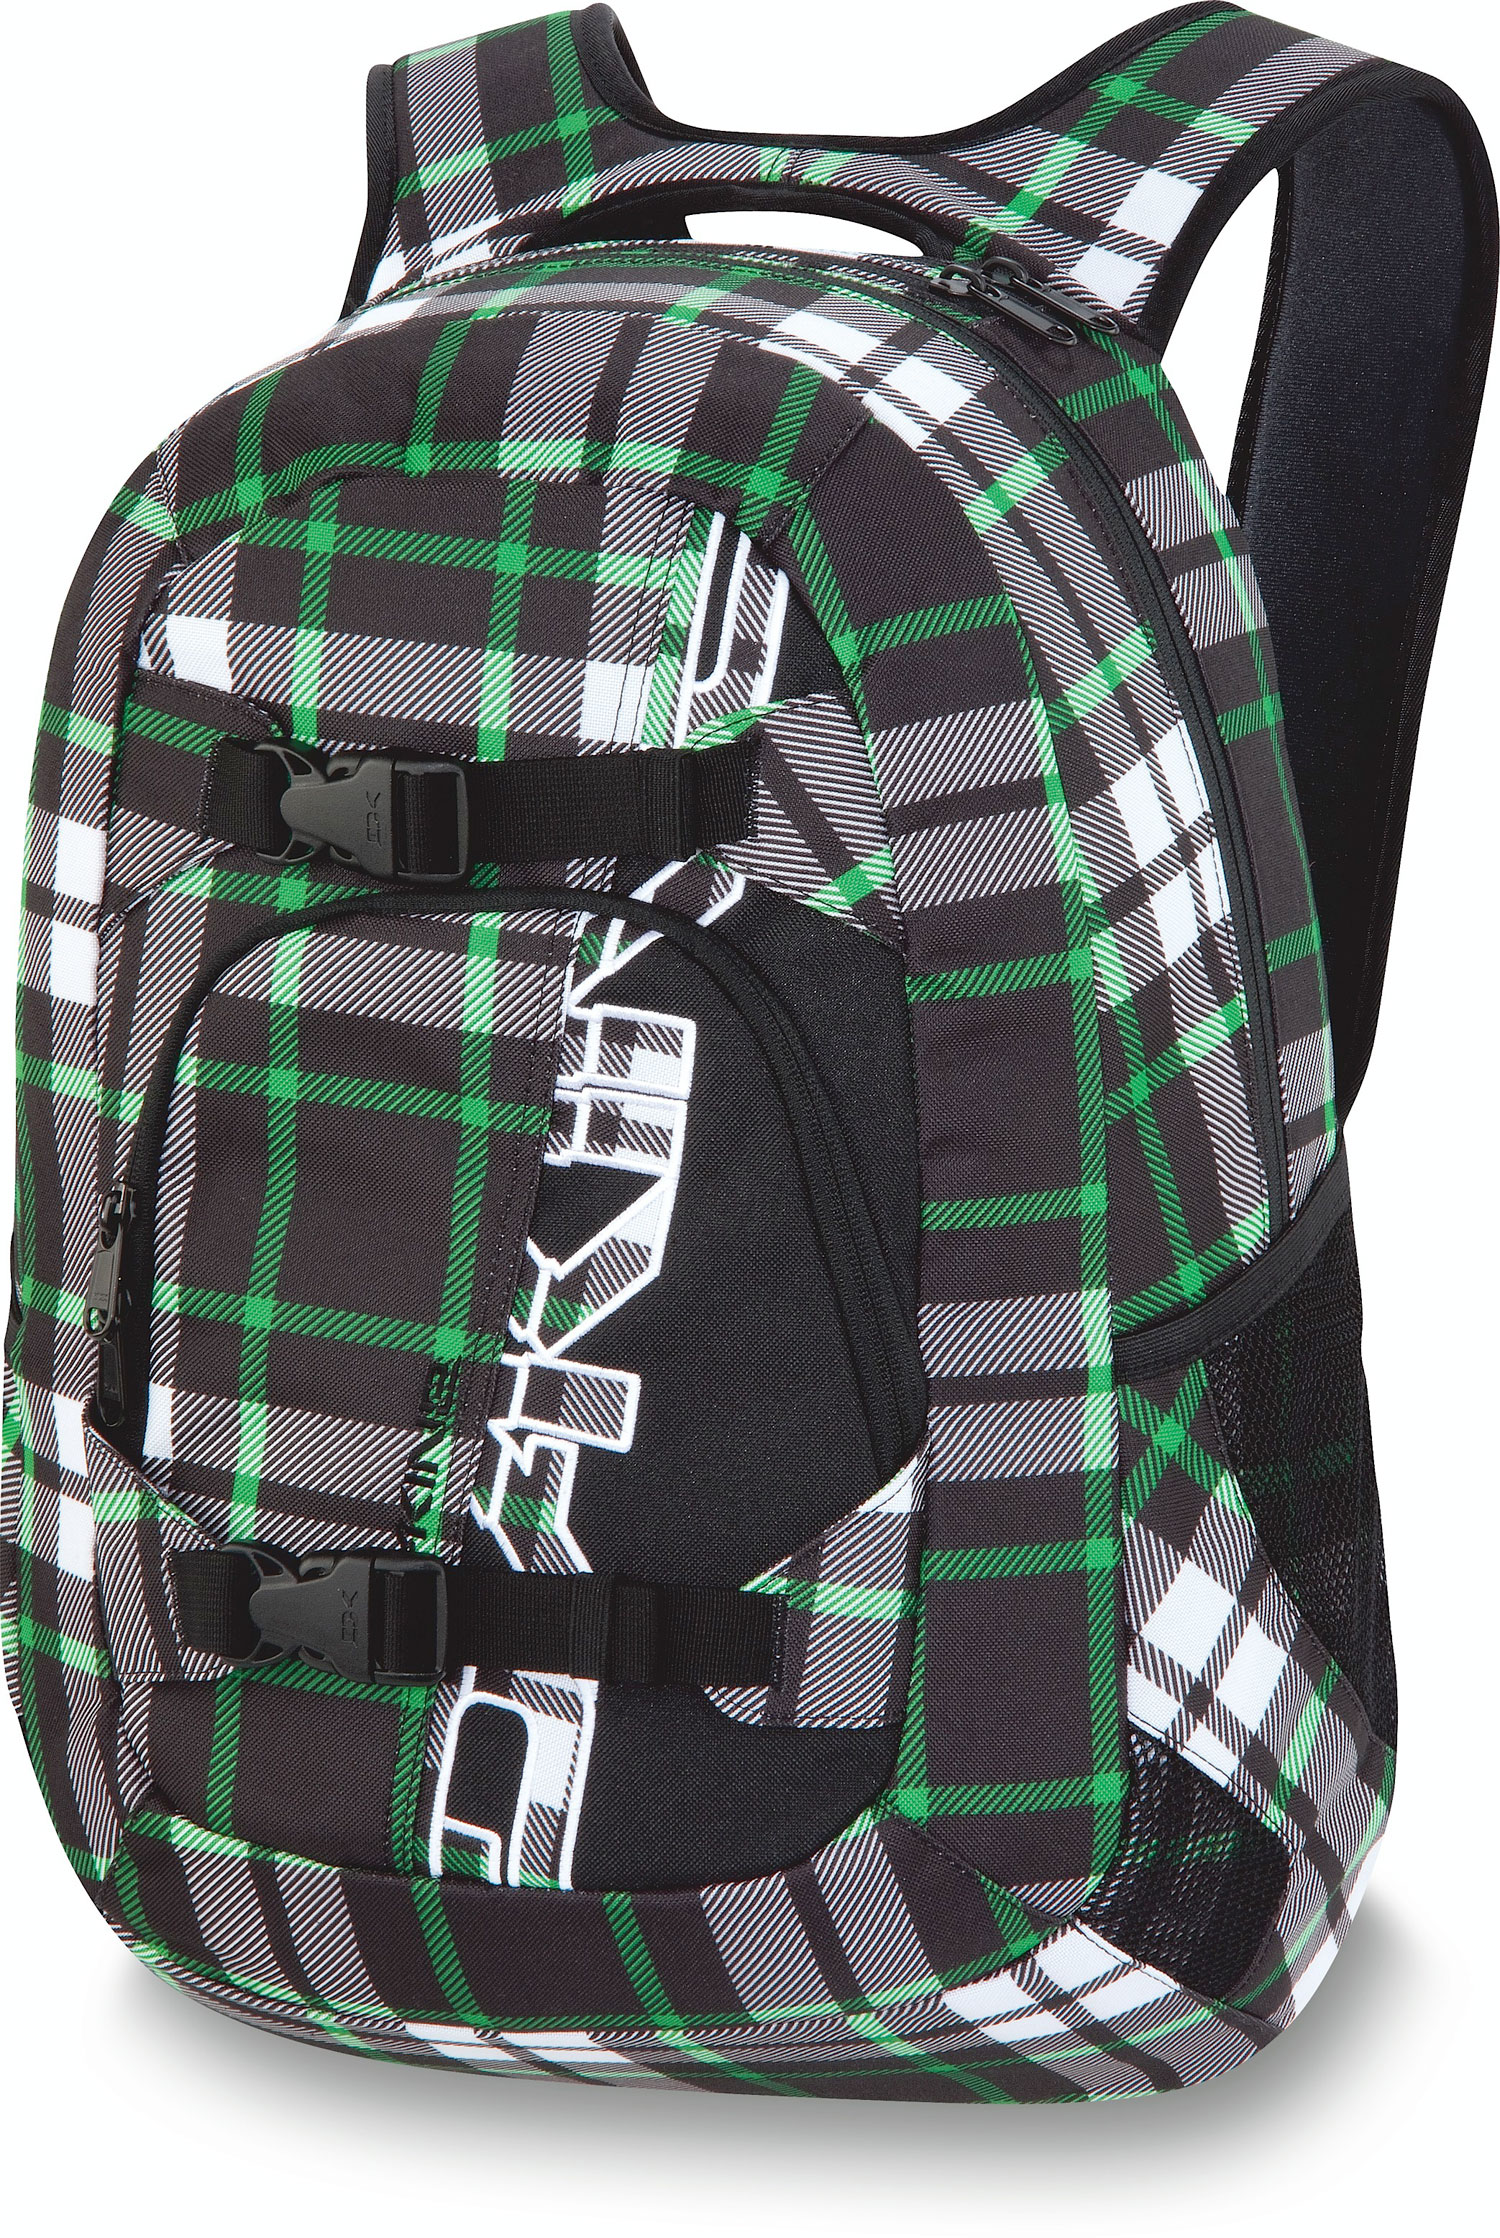 "Surf Key Features of the Dakine Explorer 26L Backpack: 1600 cu. in. [ 26L ] 20 x 12 x 10"" [ 50 x 30 x 25cm ] 600D Polyester Padded sleeve fits most 15"" laptops Skate carry straps MP3 / fleece sunglass pockets Organizer pocket Mesh side pockets - $41.95"